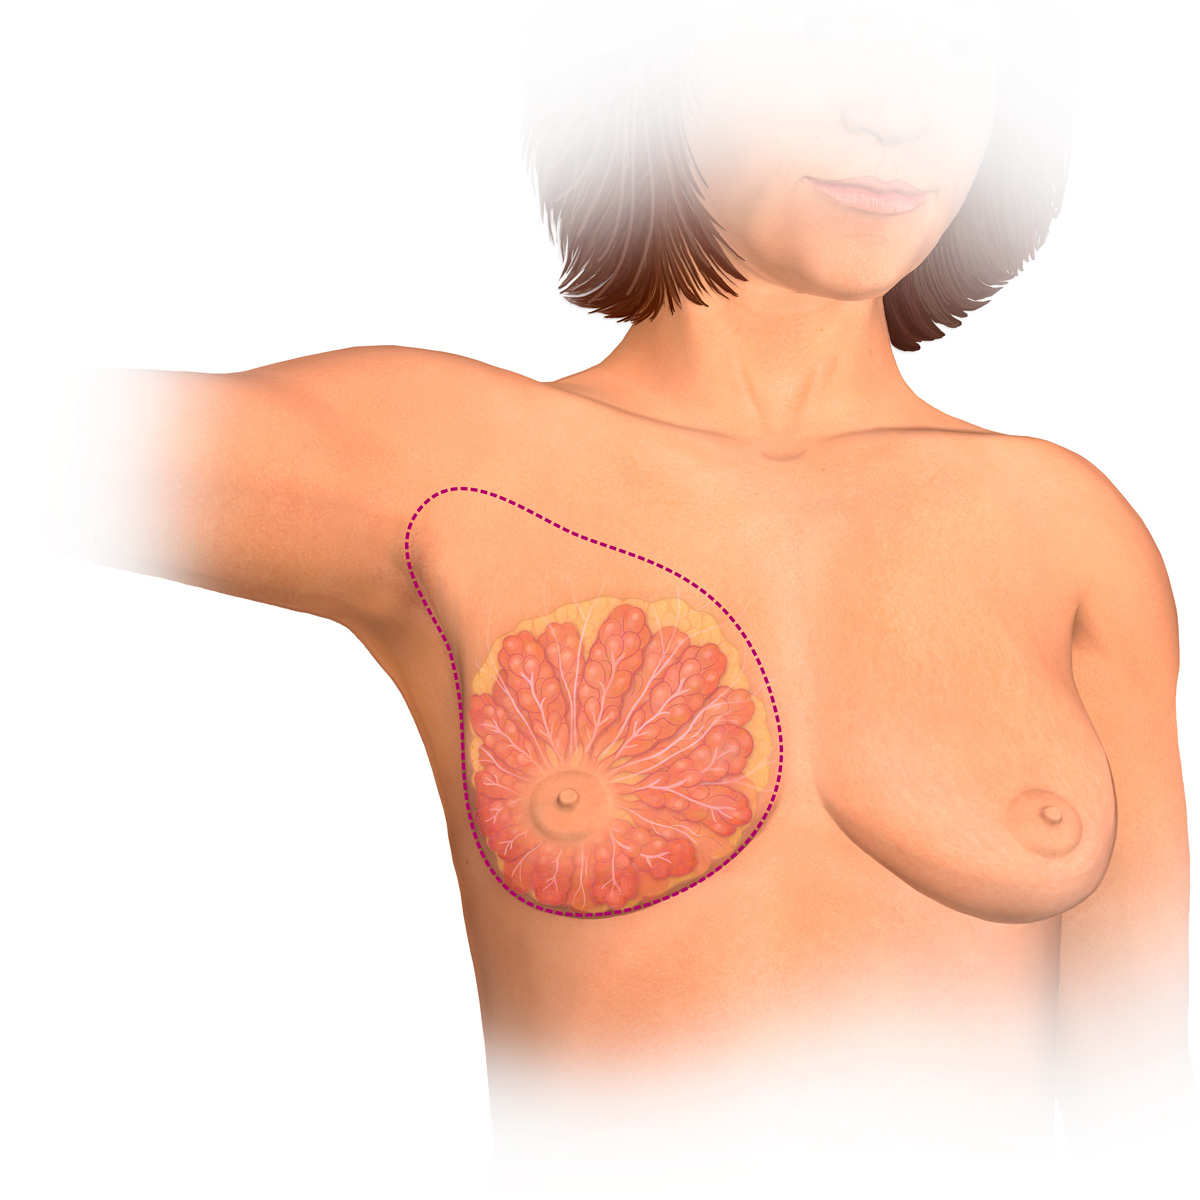 tissue breast medical for terminology